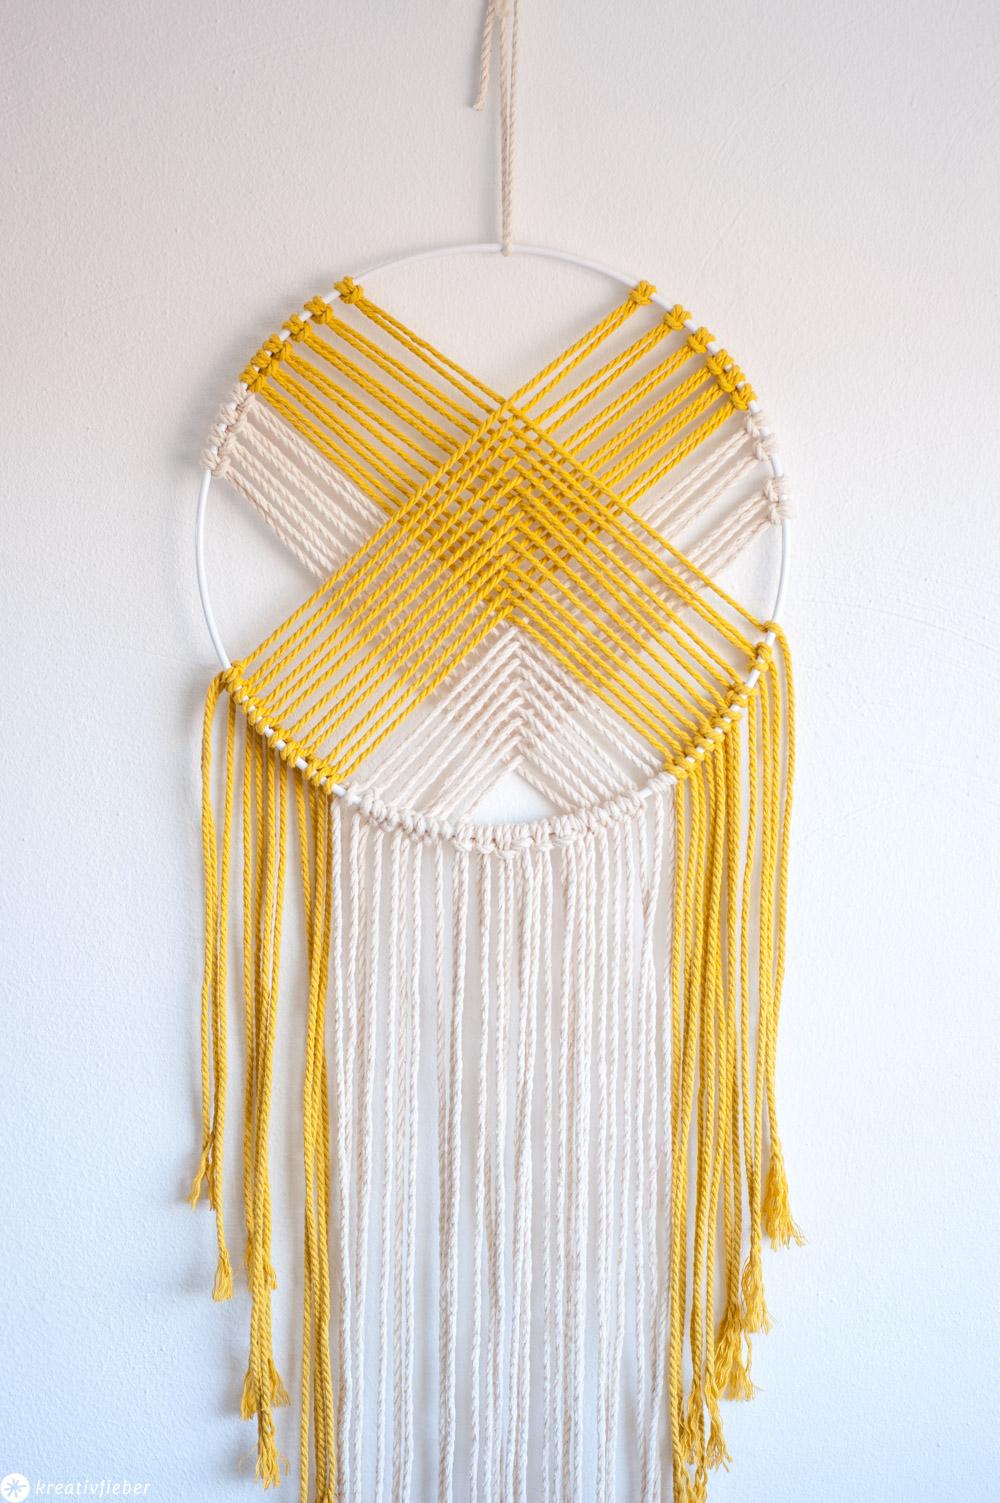 Wallhanging Makramee mit Ring